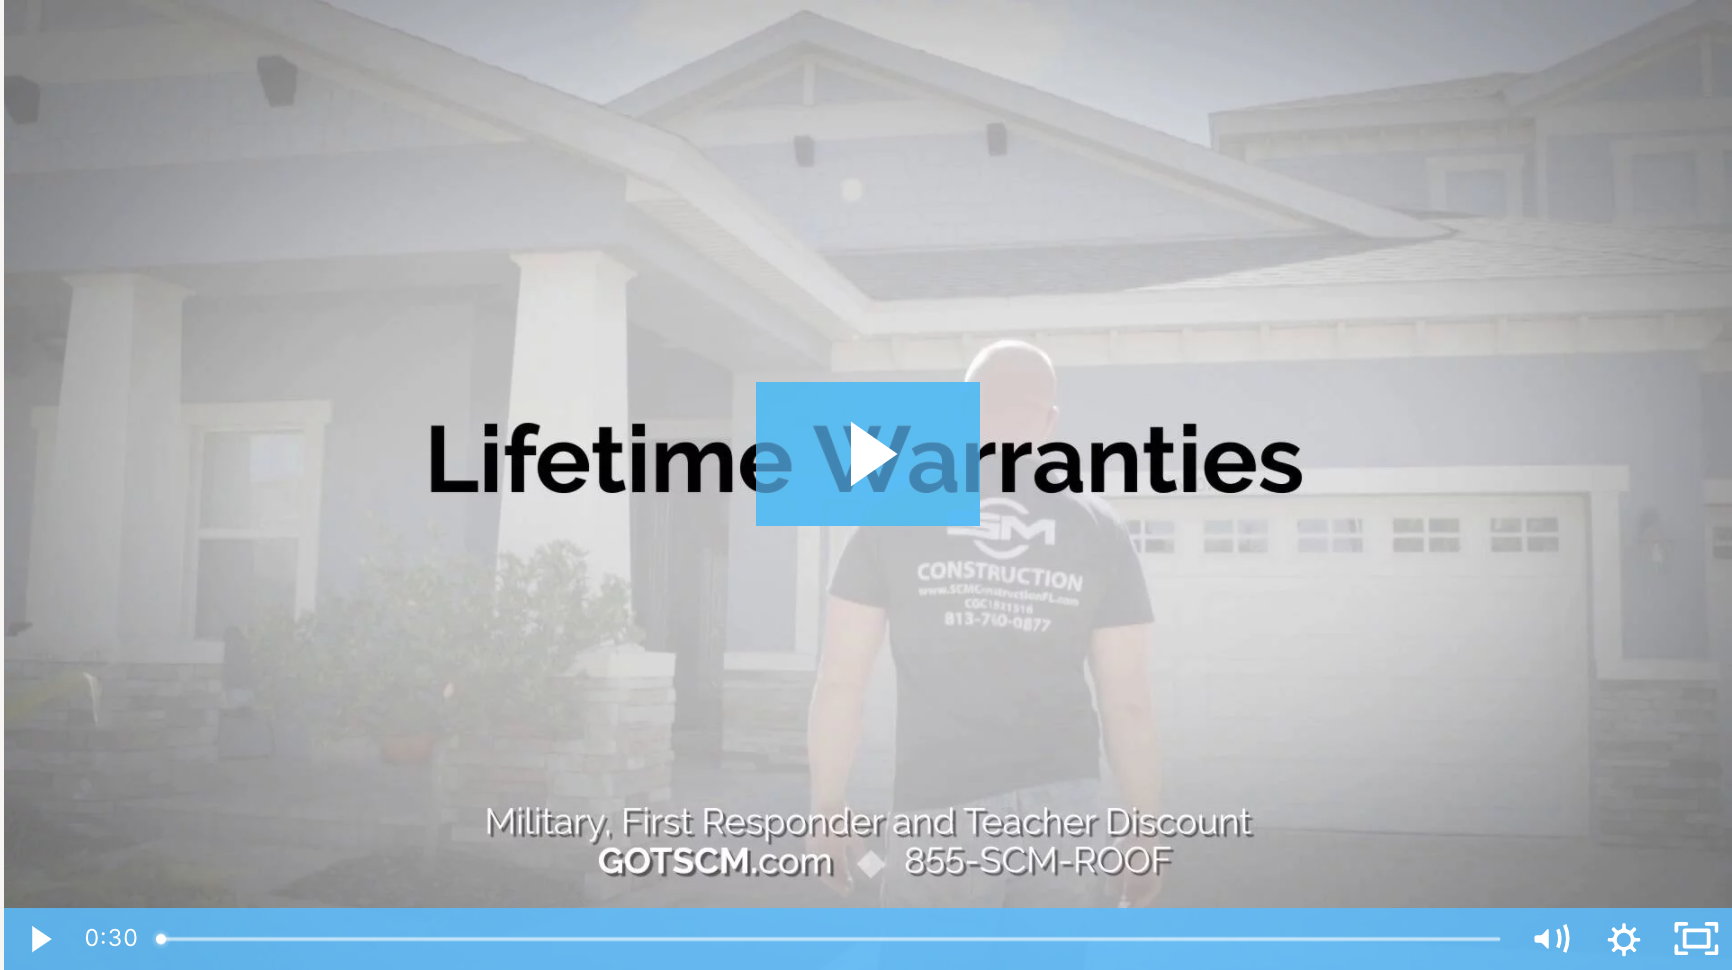 SCM Roofing - Lifetime Warranties Video